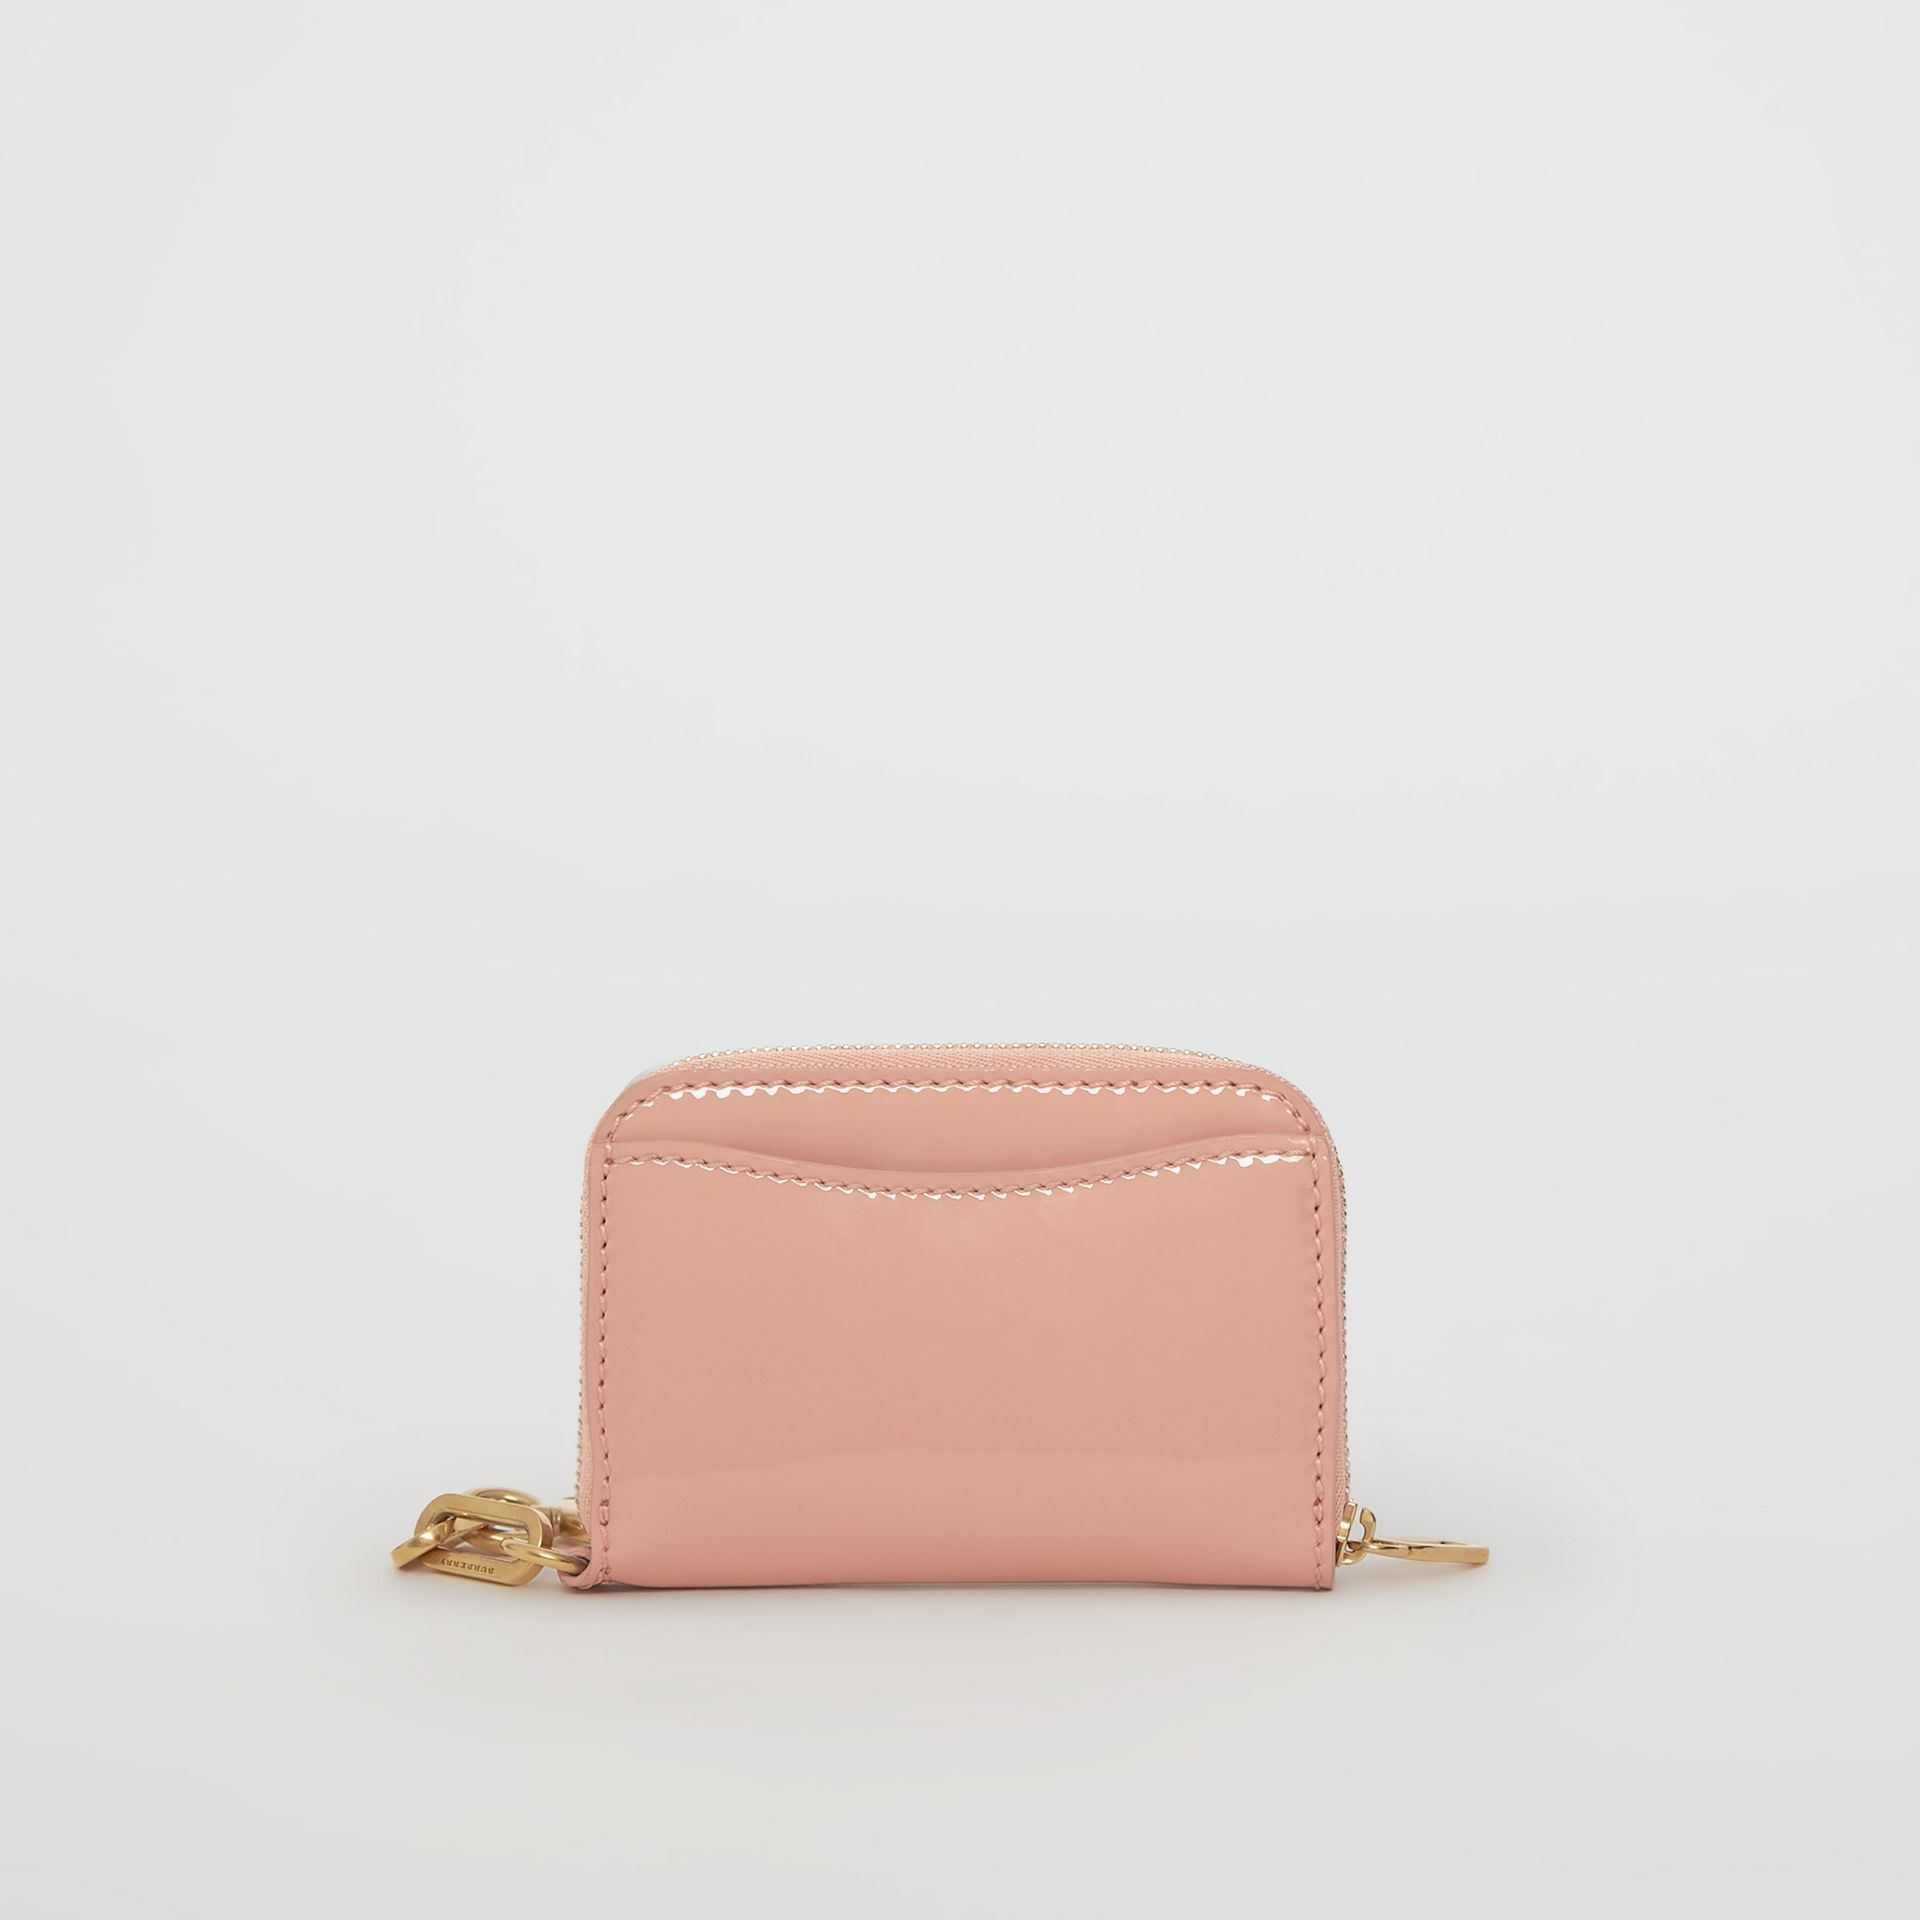 Link Detail Patent Leather Ziparound Wallet in Pale Fawn Pink - Women | Burberry Canada - gallery image 5